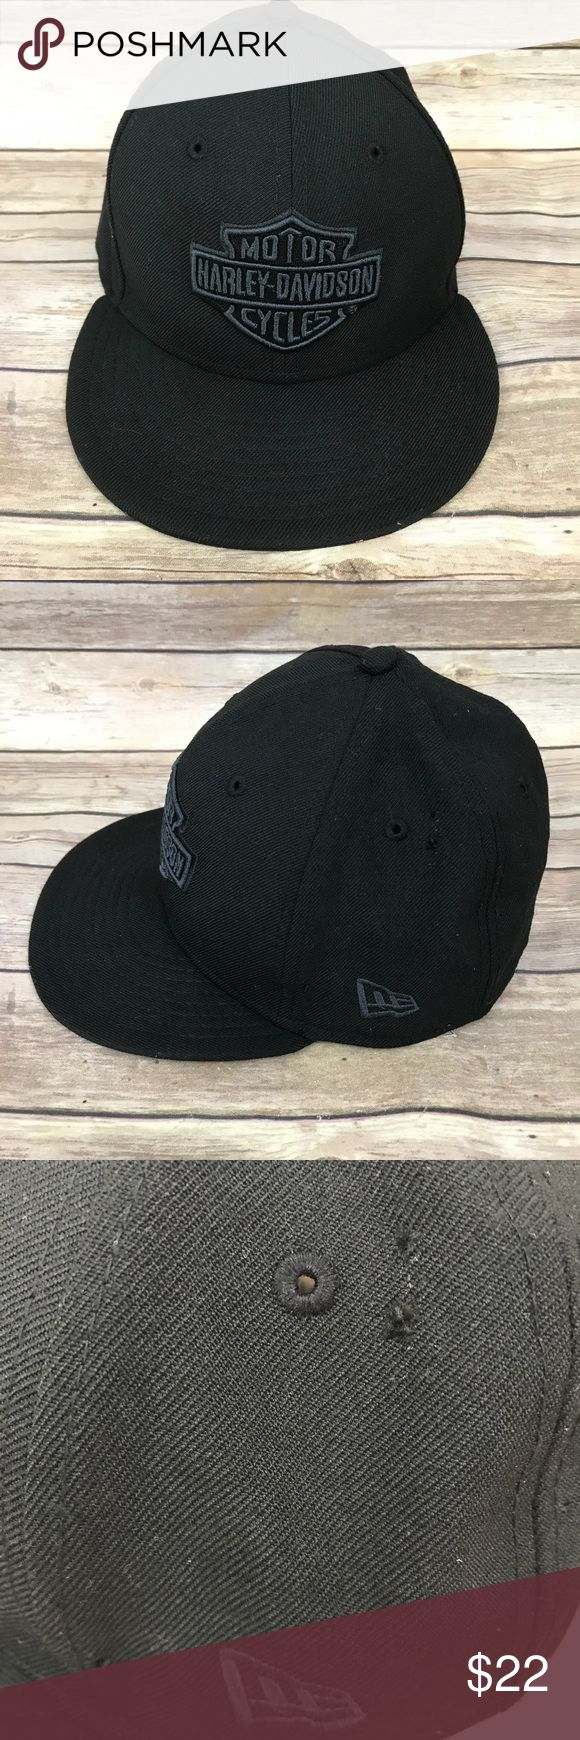 Harley Davidson New Era Fitted Hat size 7 Harley Davidson New Era Fitted Hat size 7 does have a couple of small holes but overall good condition New Era Accessories Hats